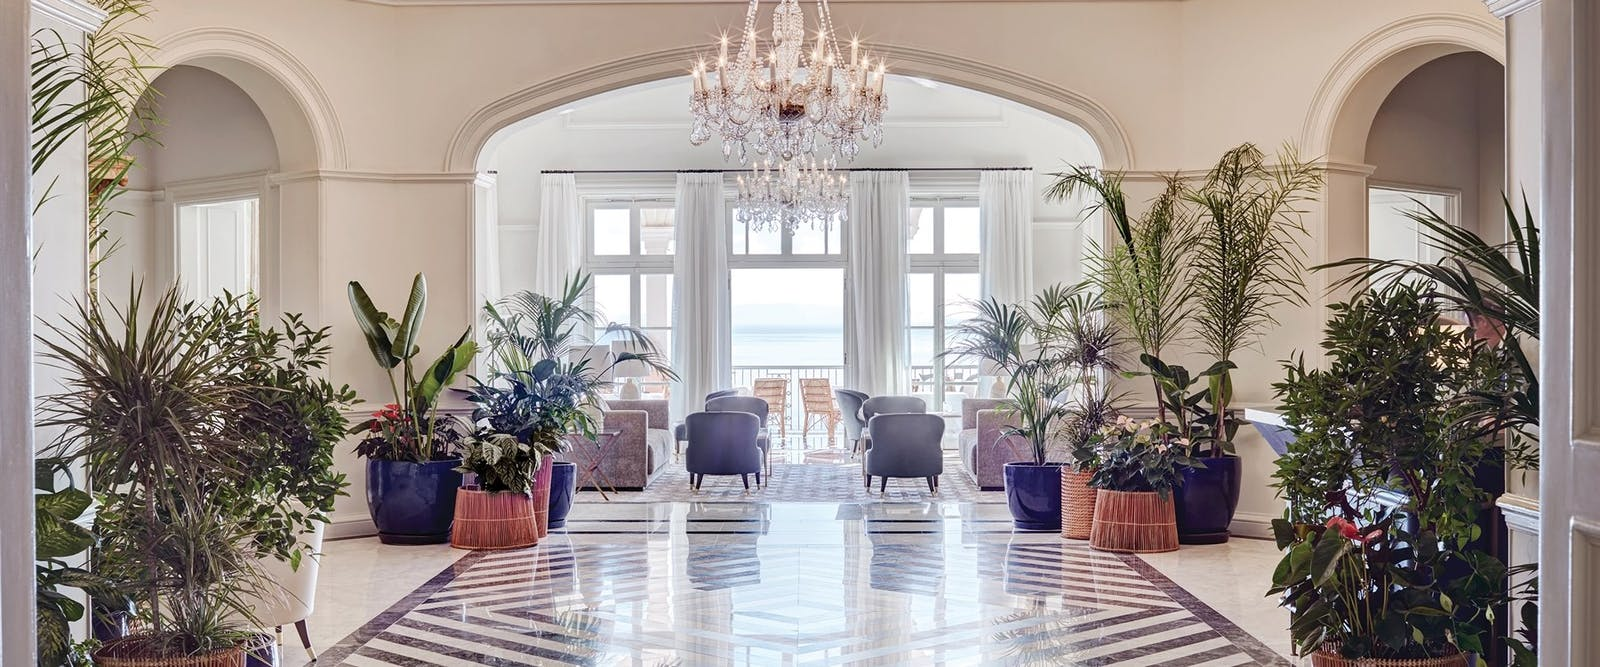 The Lobby at Belmond Reids Palace, Madeira, Portugal